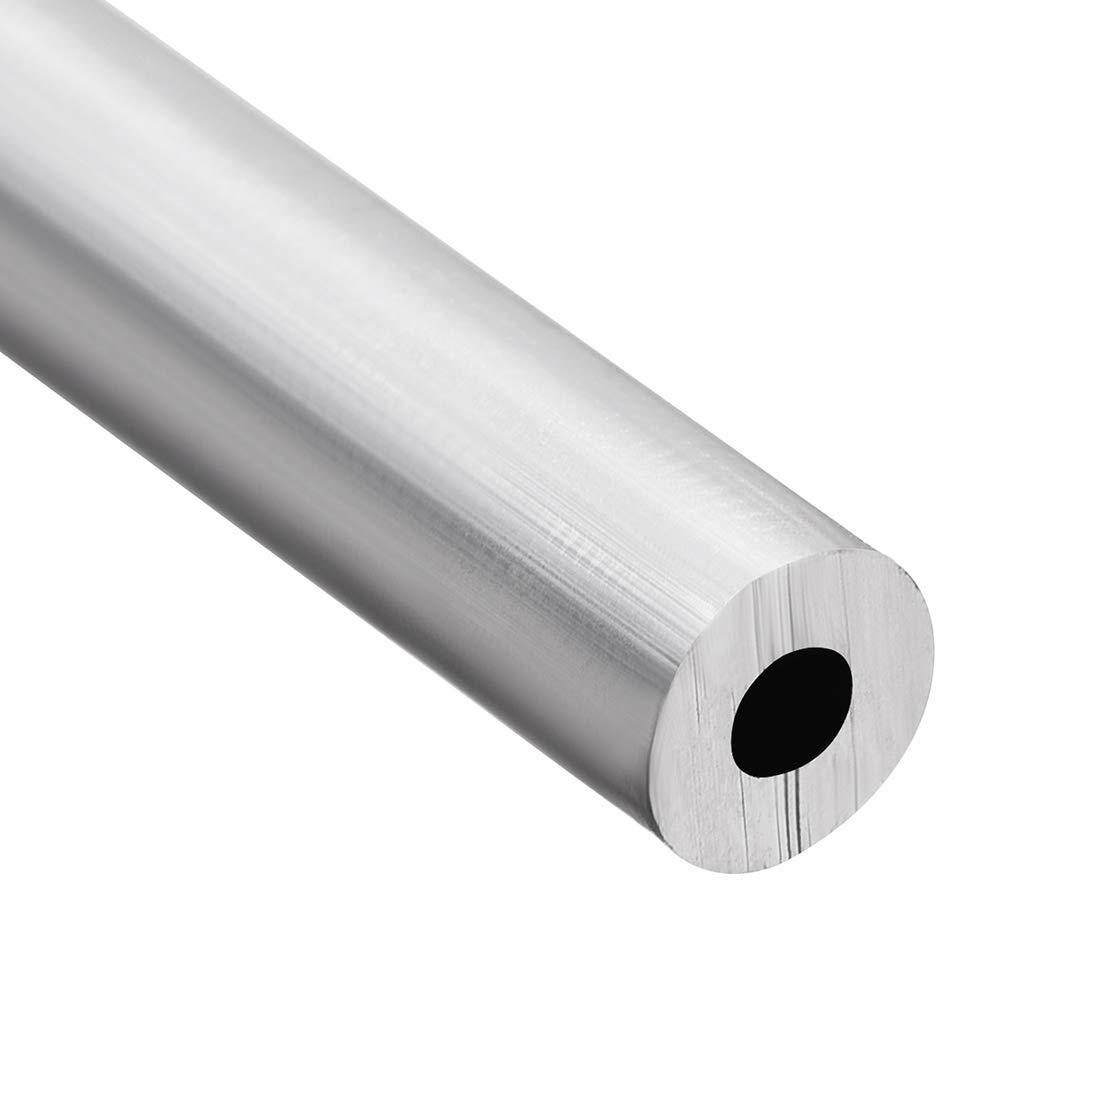 4Pcs 6063 Seamless Straight Round Aluminum Tube Tube 1 feet in Length 0.0975 inches ID 0.234 inches Outside Diameter